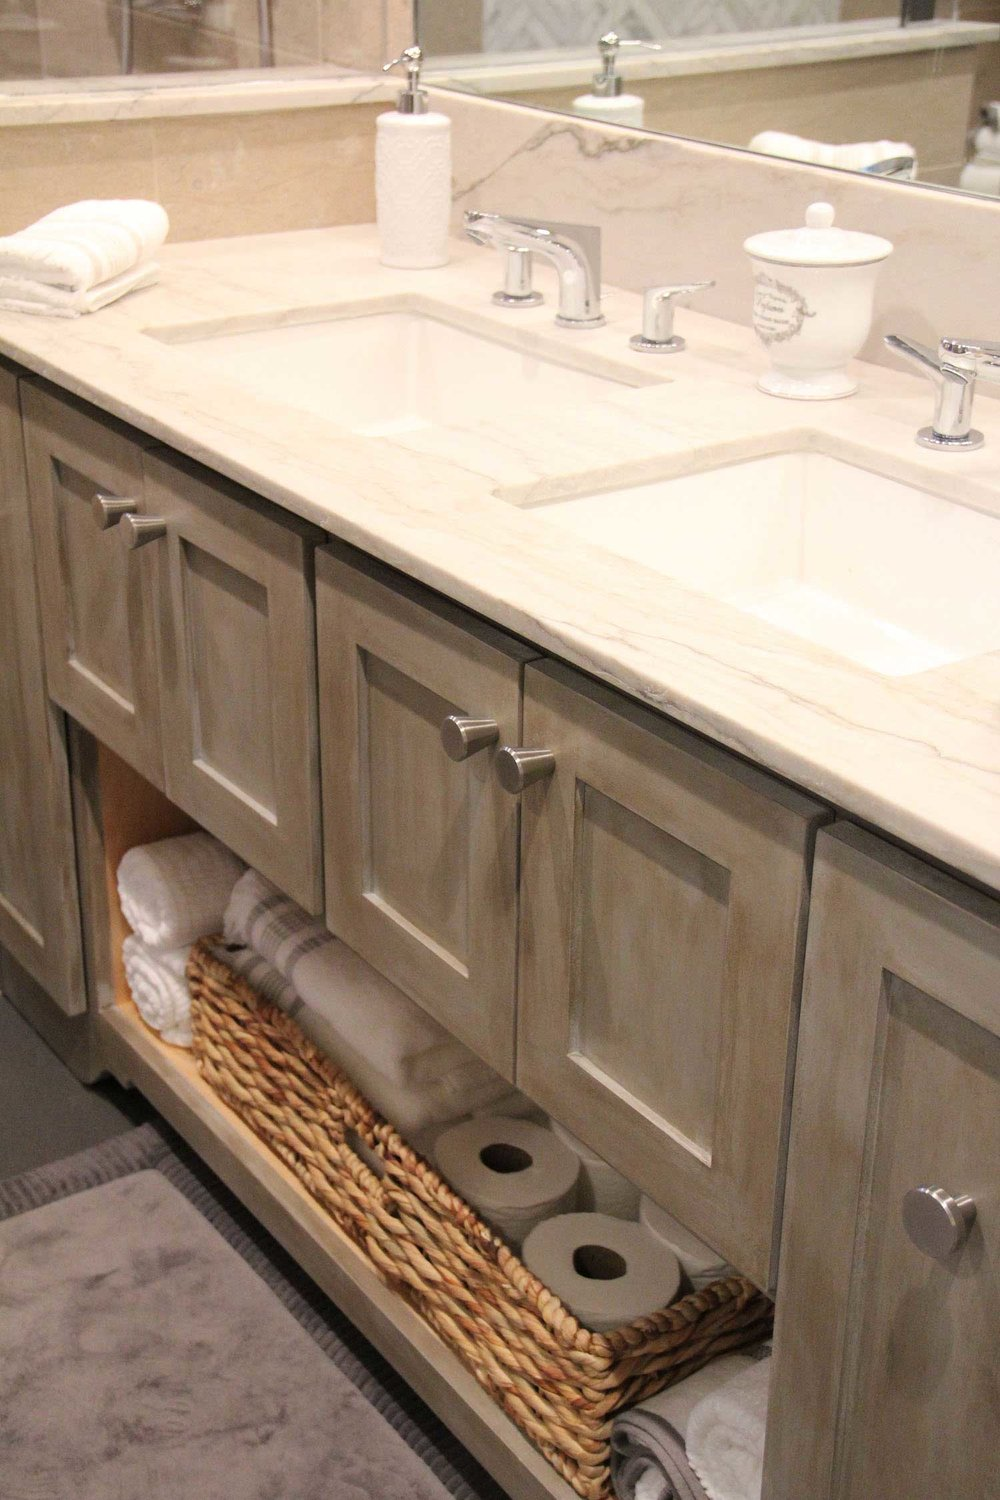 Custom Built Bathroom Sink and Cabinet